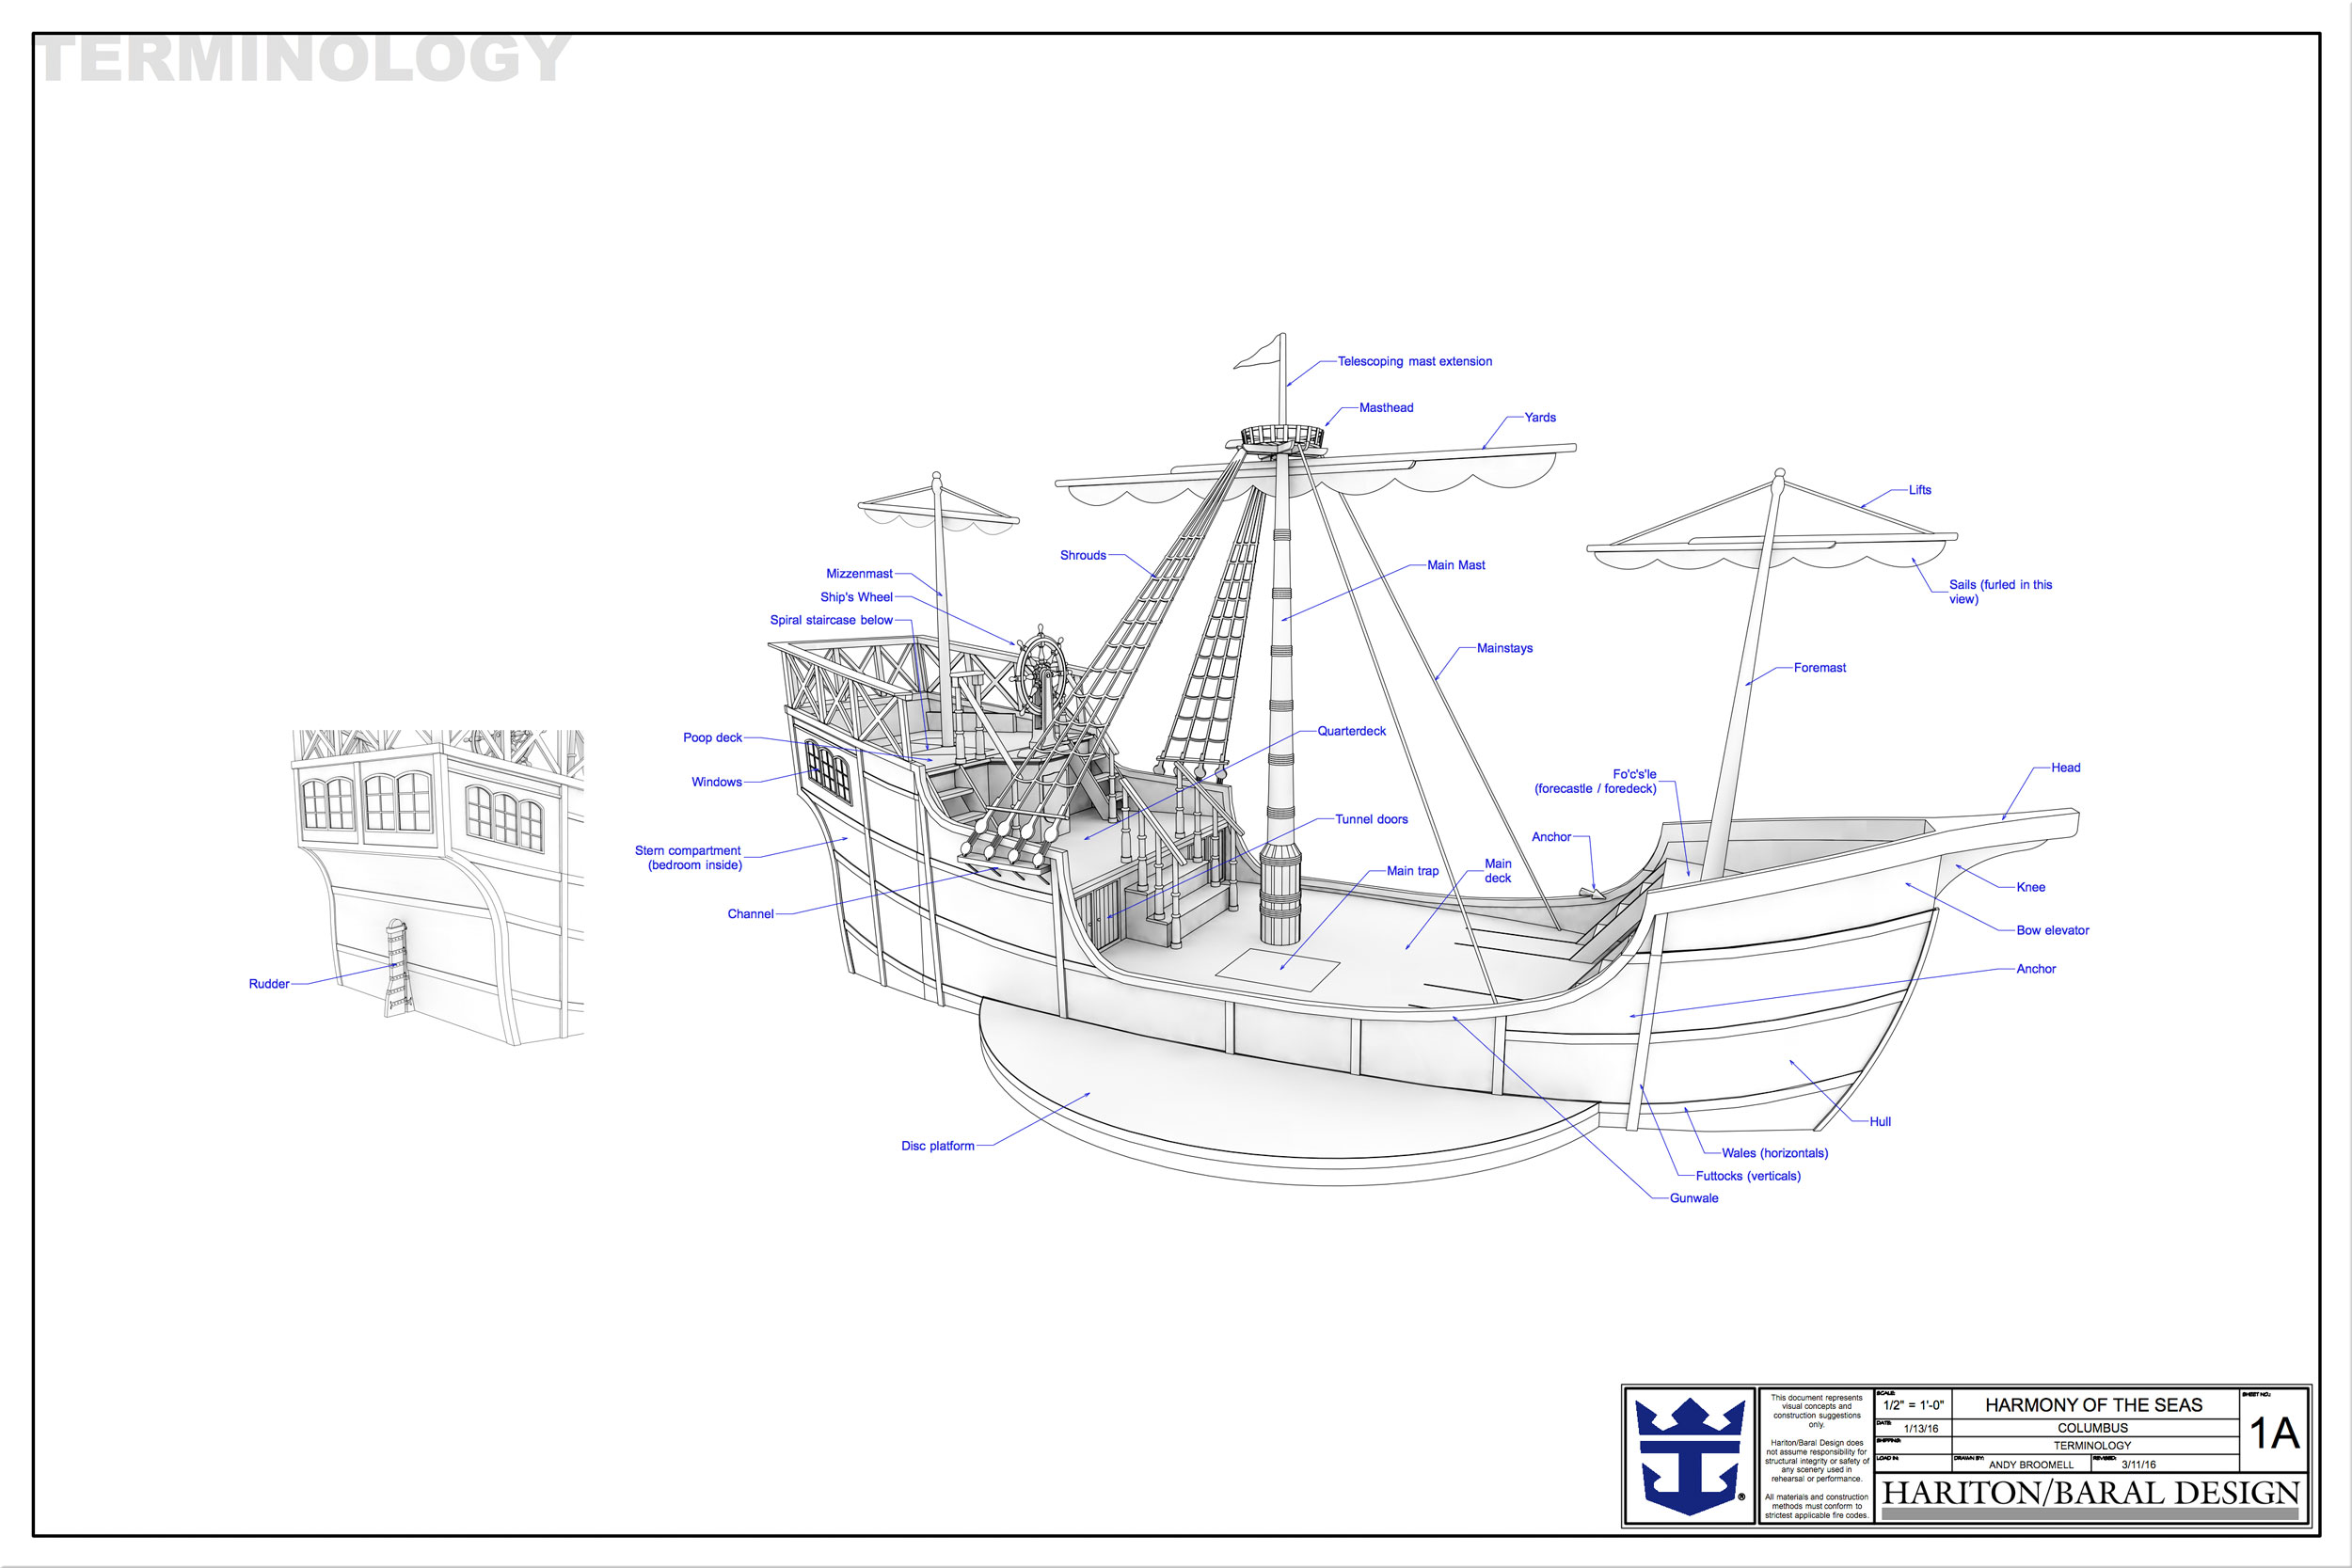 andy-broomell-drafting-columbus1-musical-vectorworks-scenic-design-scenery-plans-sailing-ship.jpg